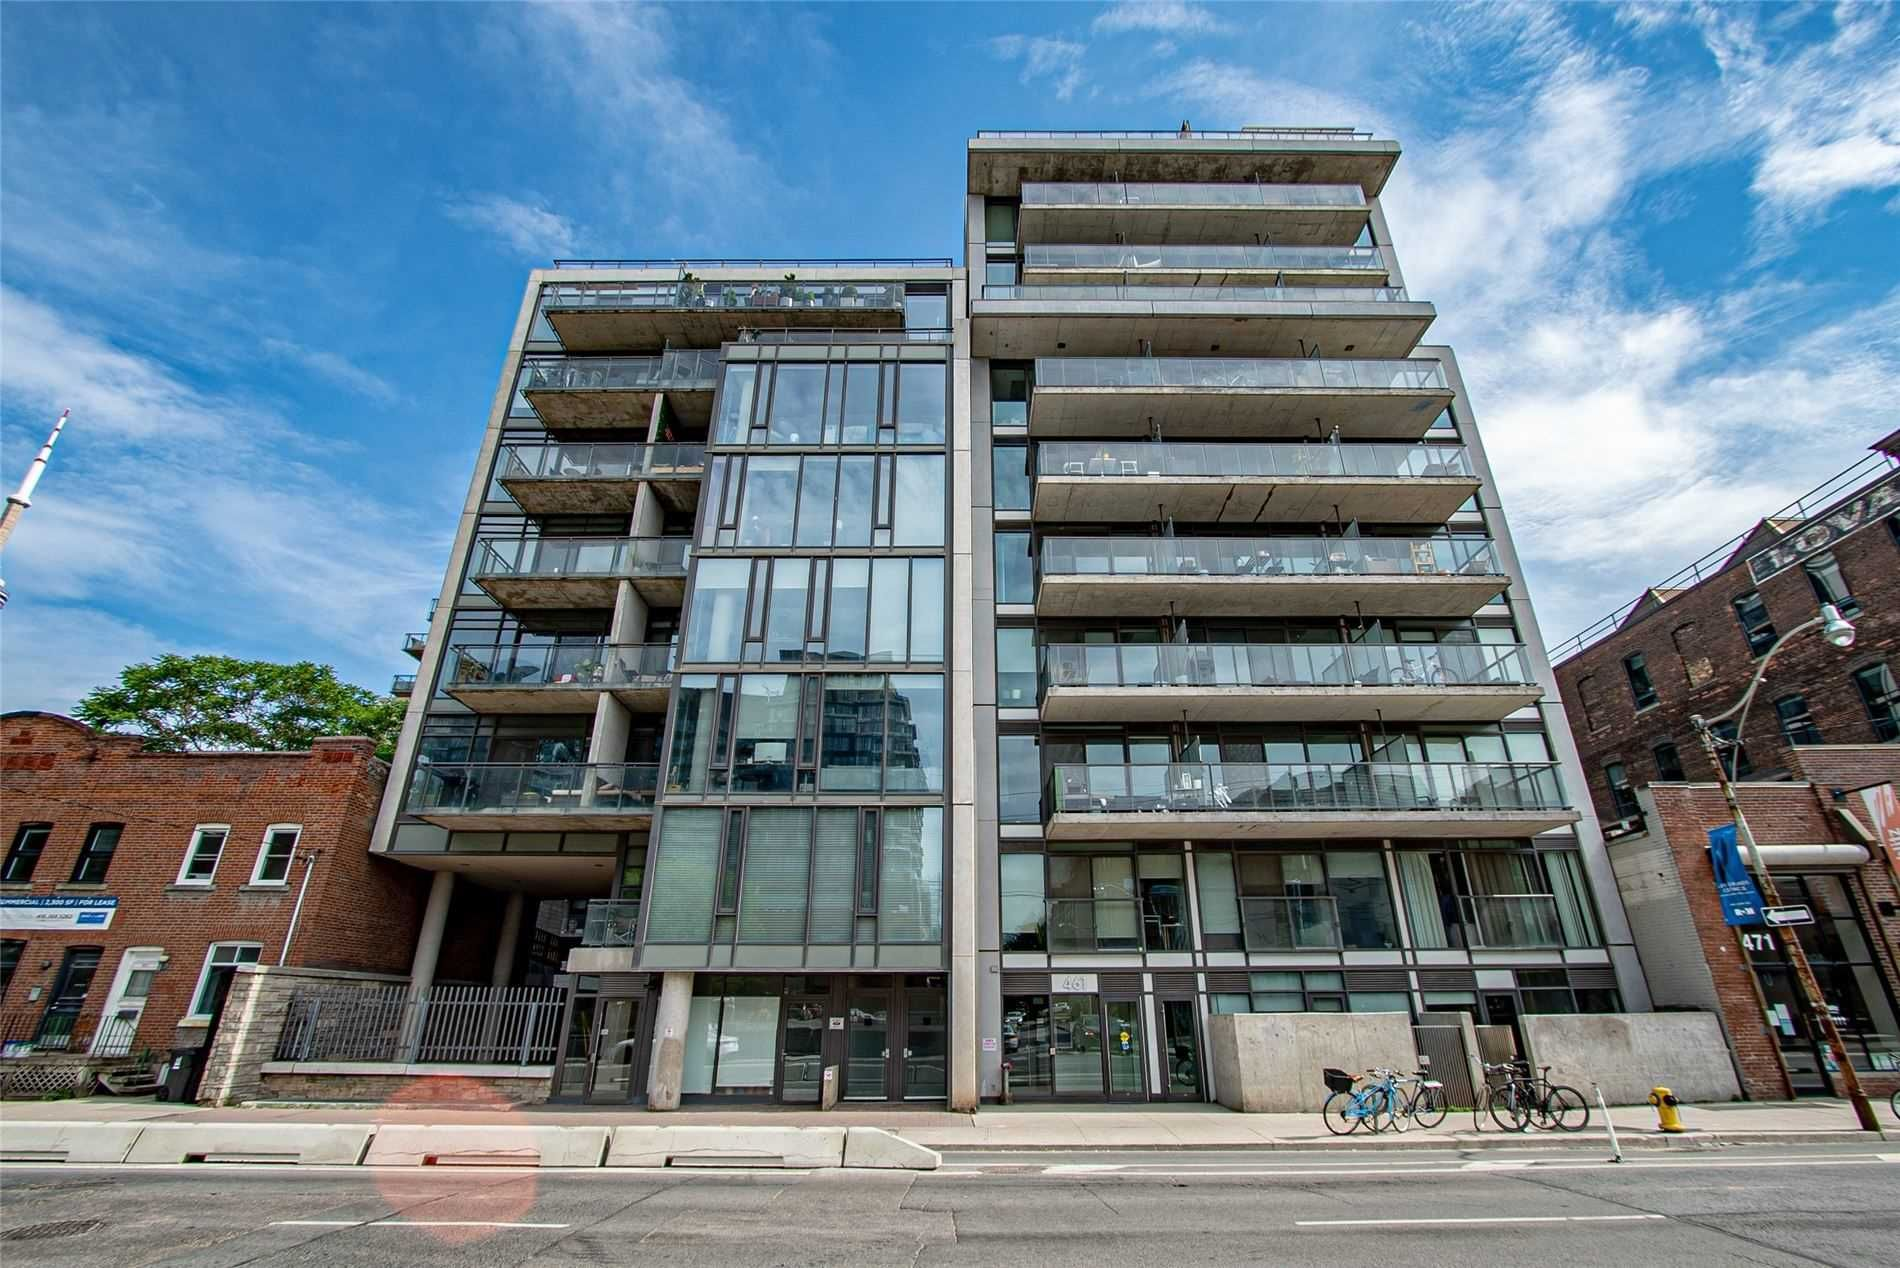 461 Adelaide St W, unit 230 for rent in Toronto - image #1